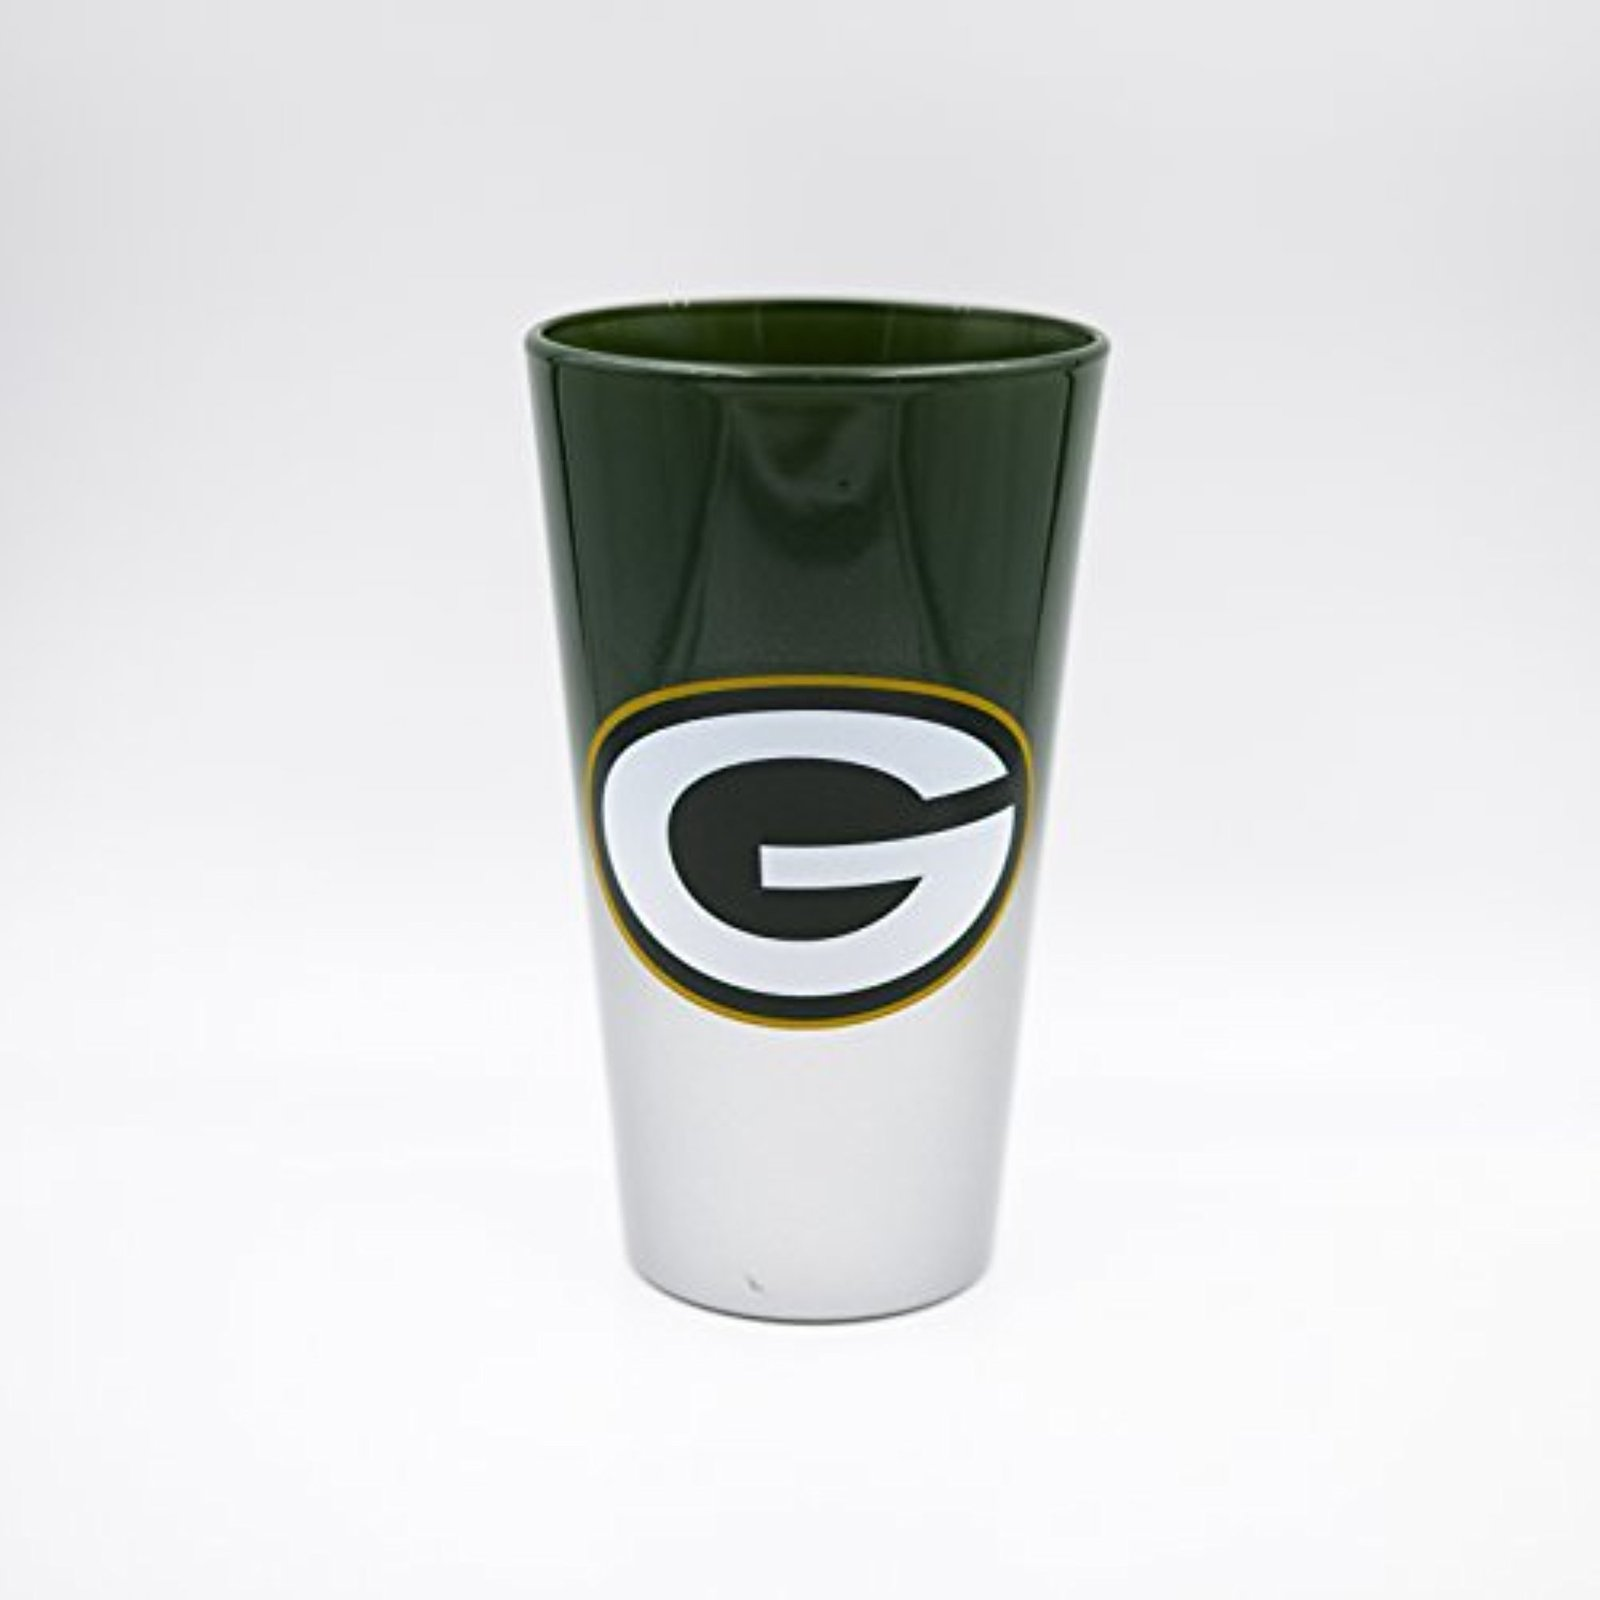 NFL Green Bay Packers Color Chrome 17 oz. Pint Glass Tumbler